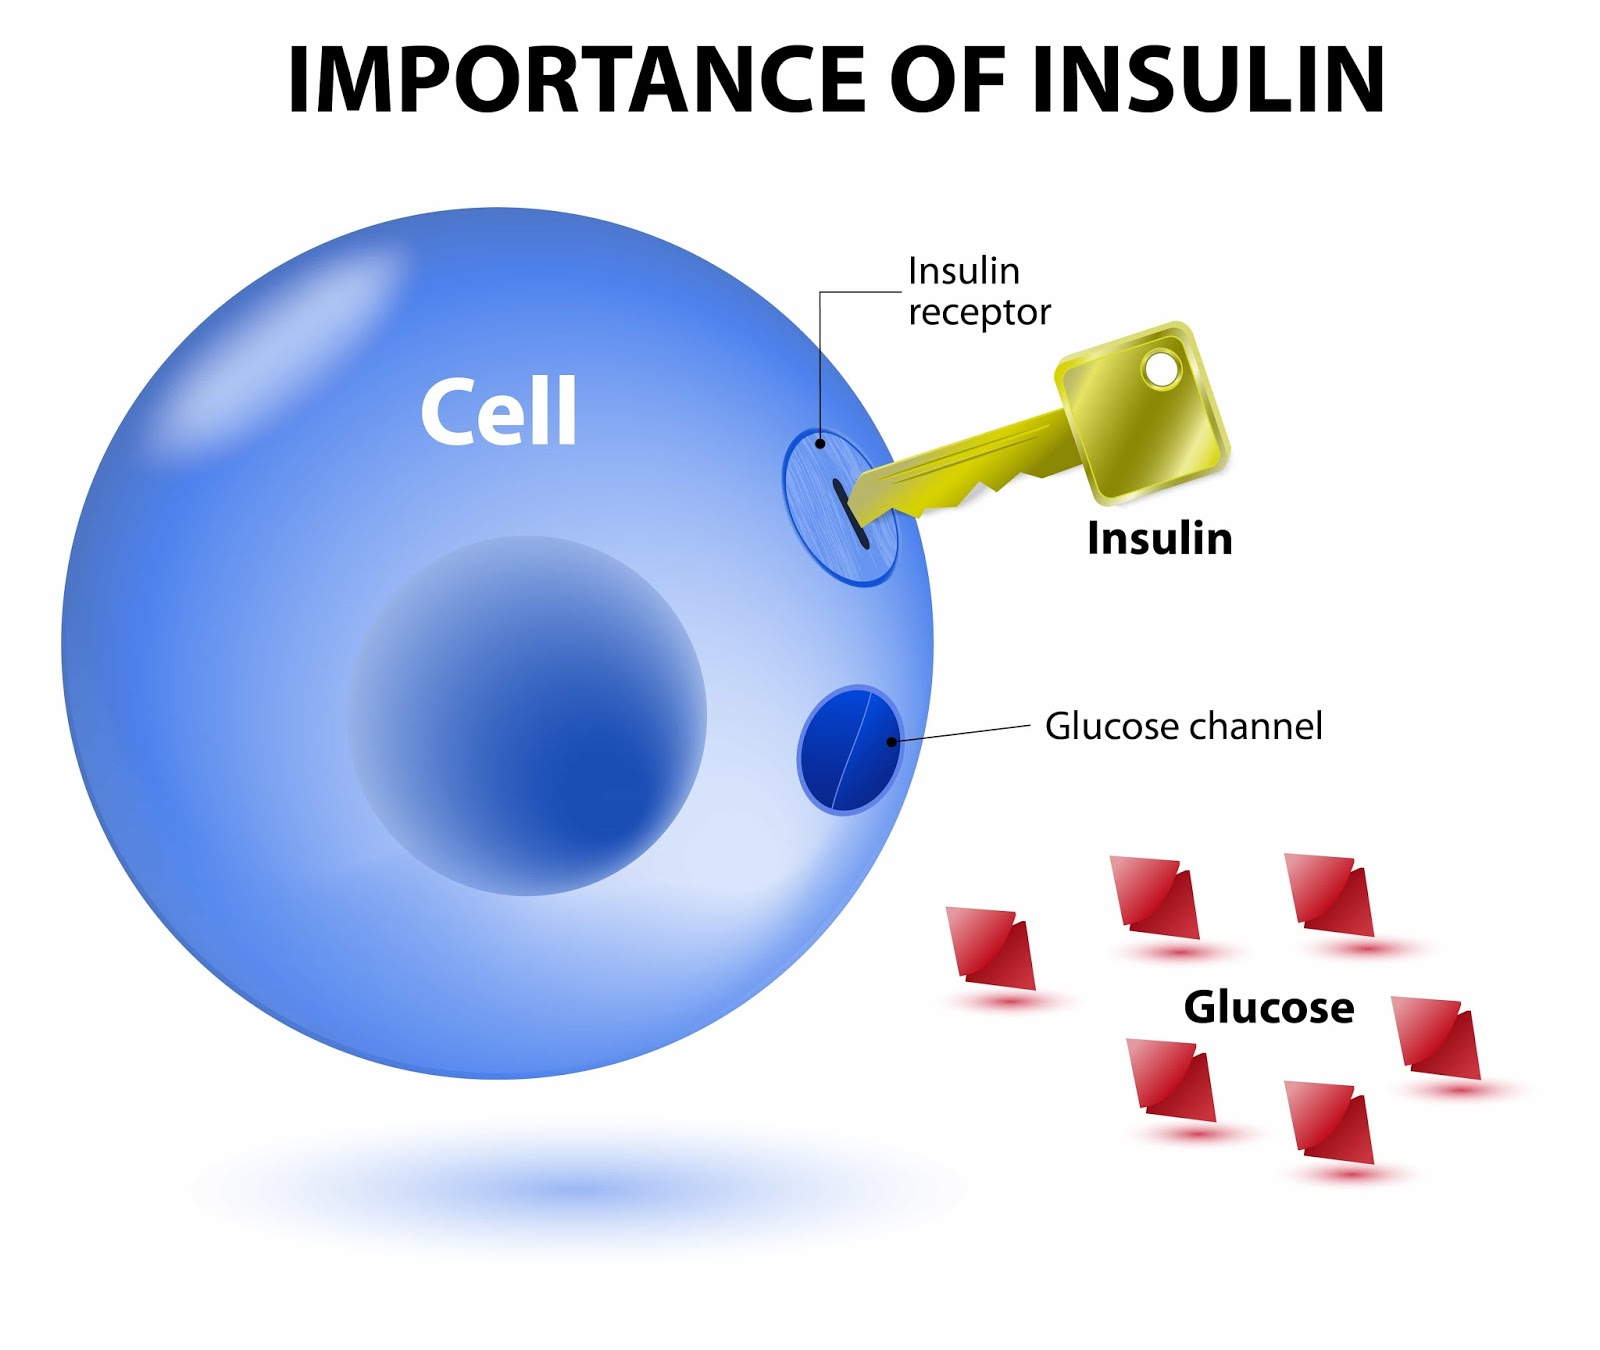 Insulin is a hormone made by the pancreas that allows our body to use sugar (glucose) from carbohydrates in the food that we eat for energy or to store glucose for future use.